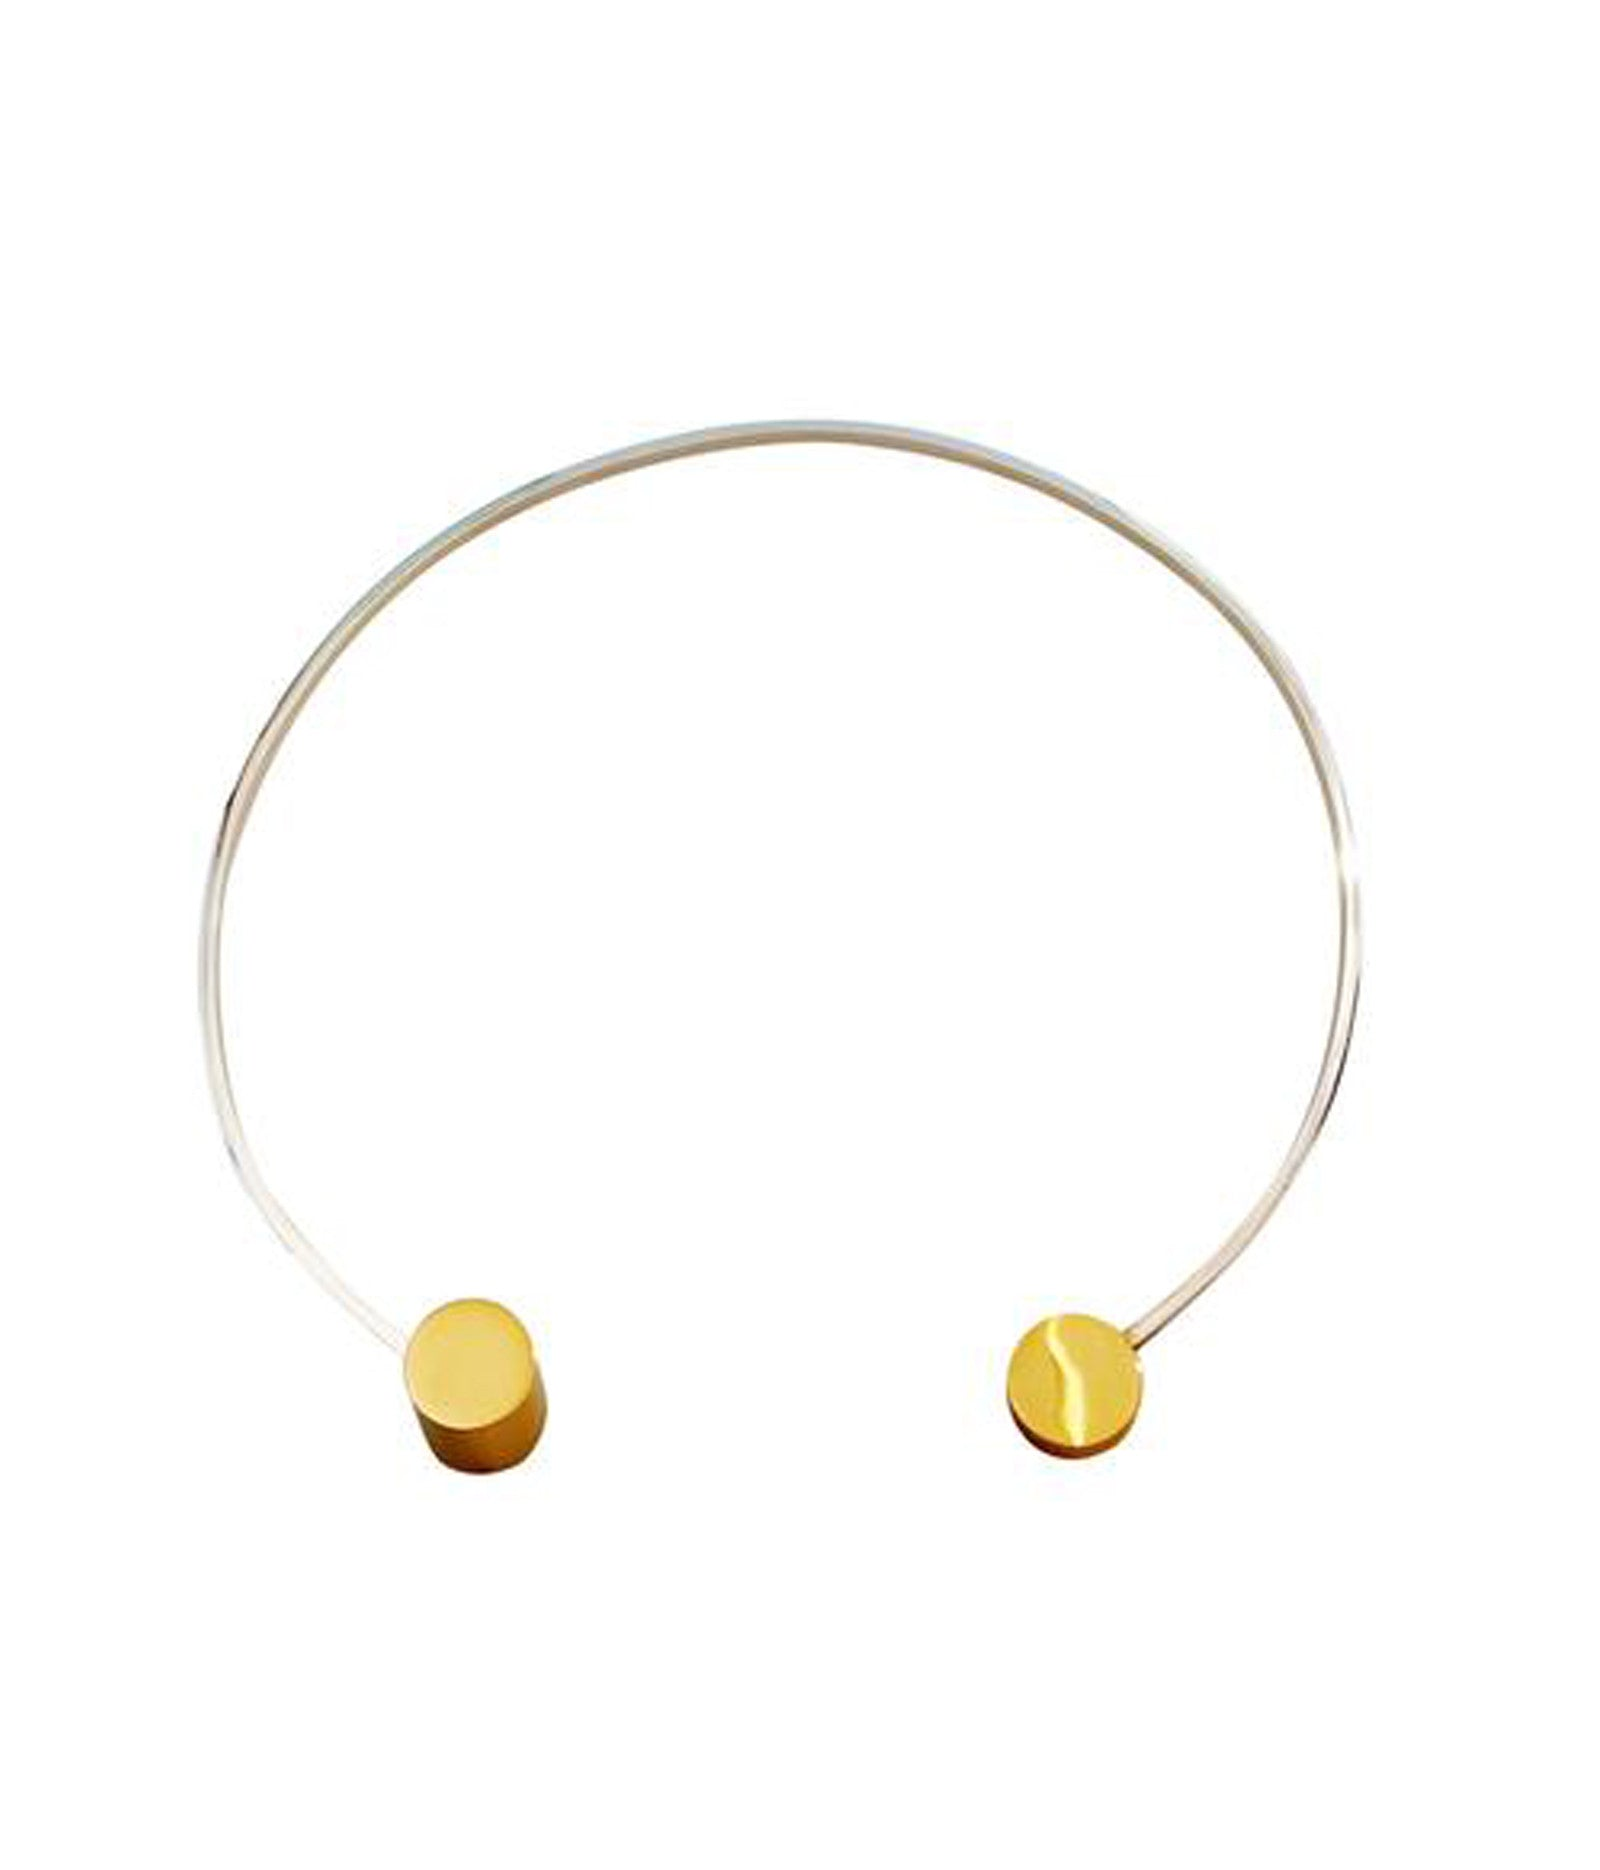 Gold Plated Disc Sterling Silver Choker